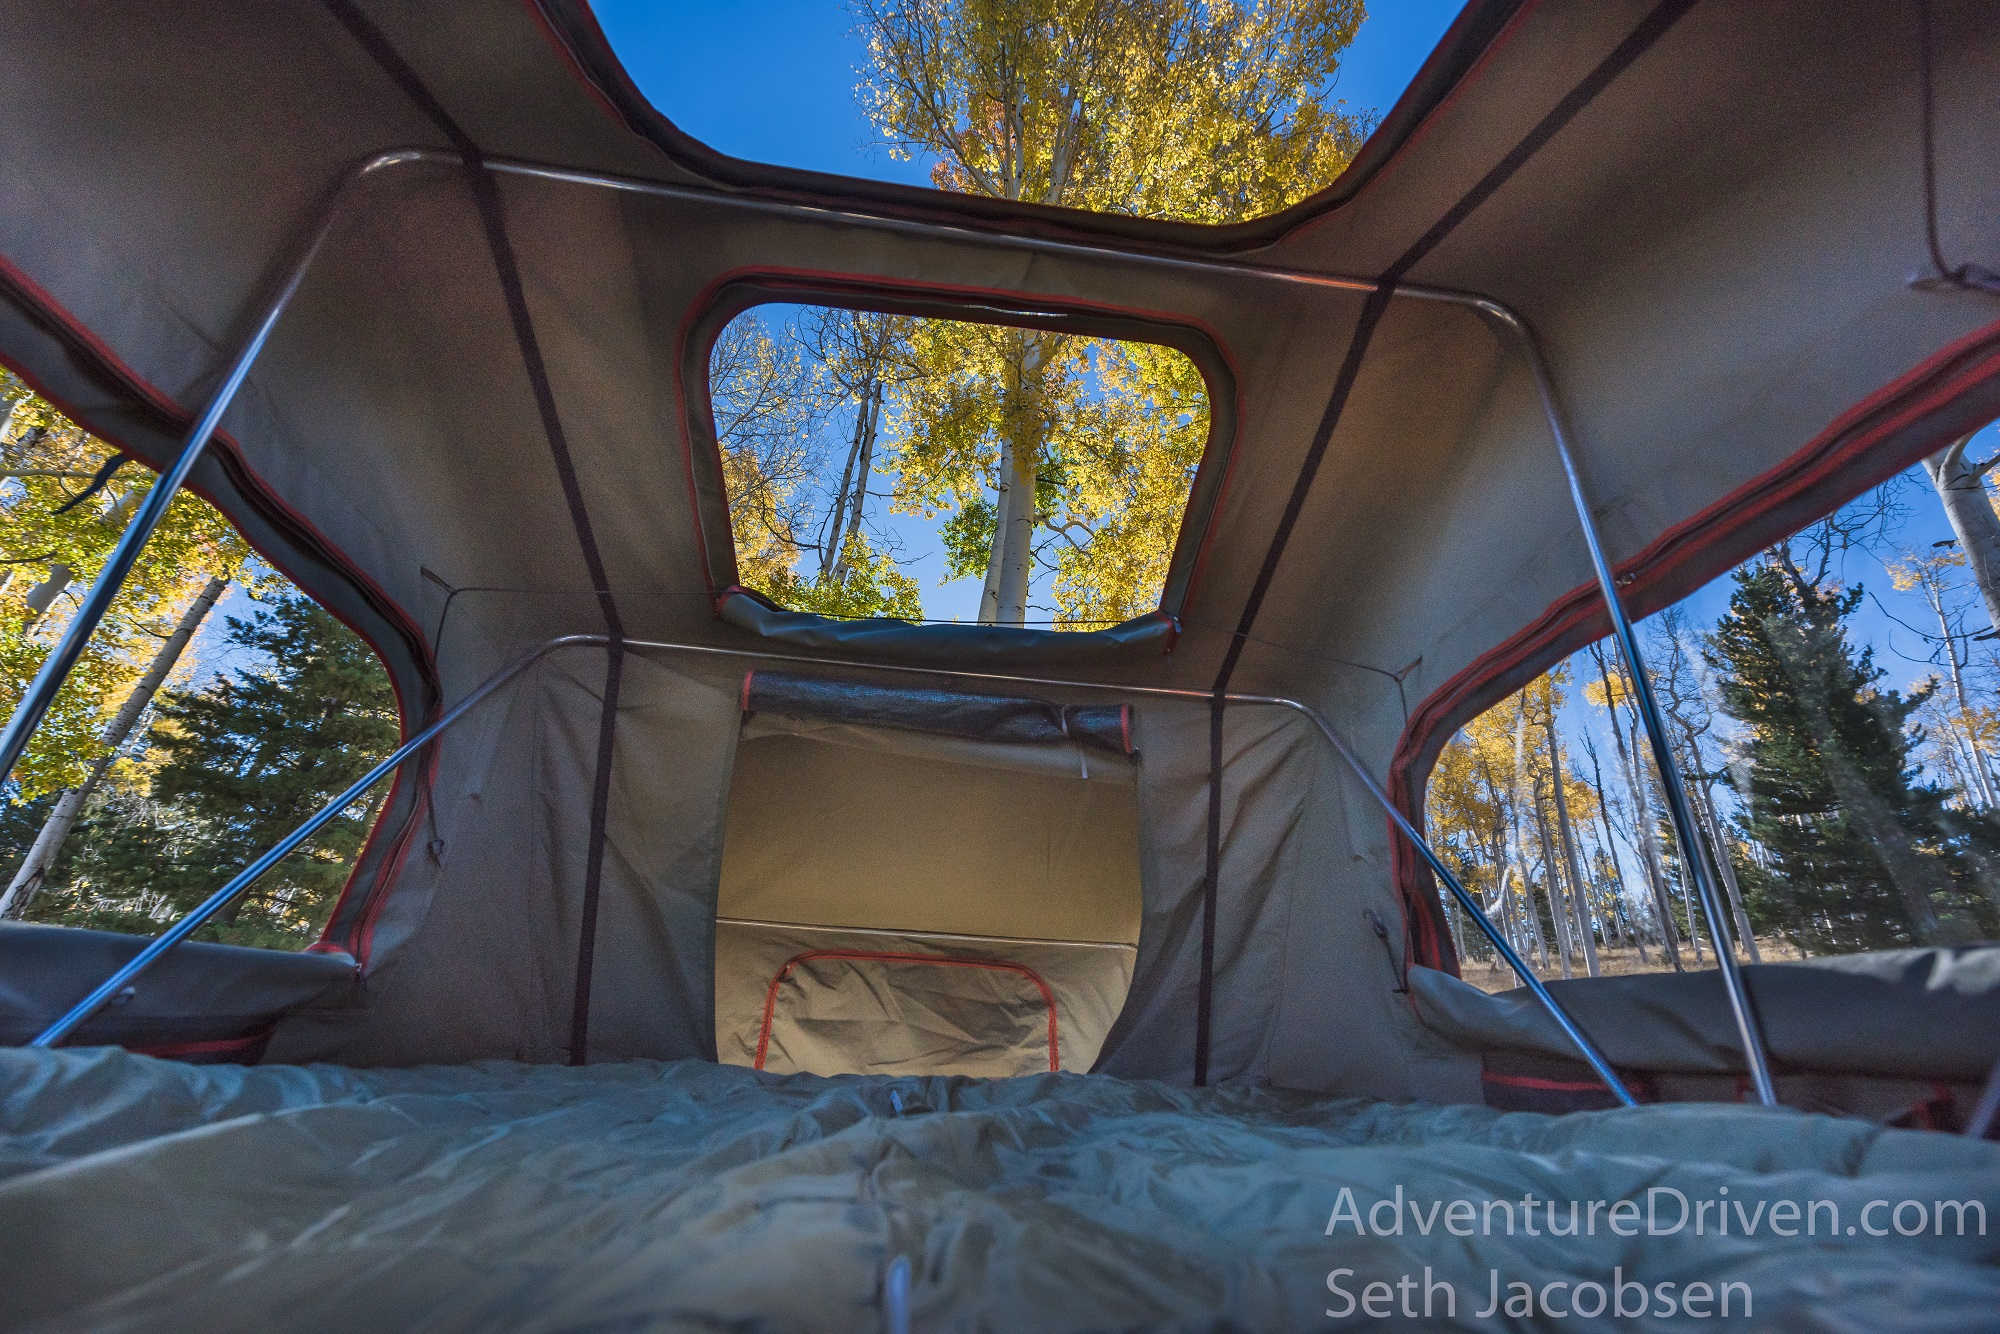 Adventure Driven roof top tent aspens-1